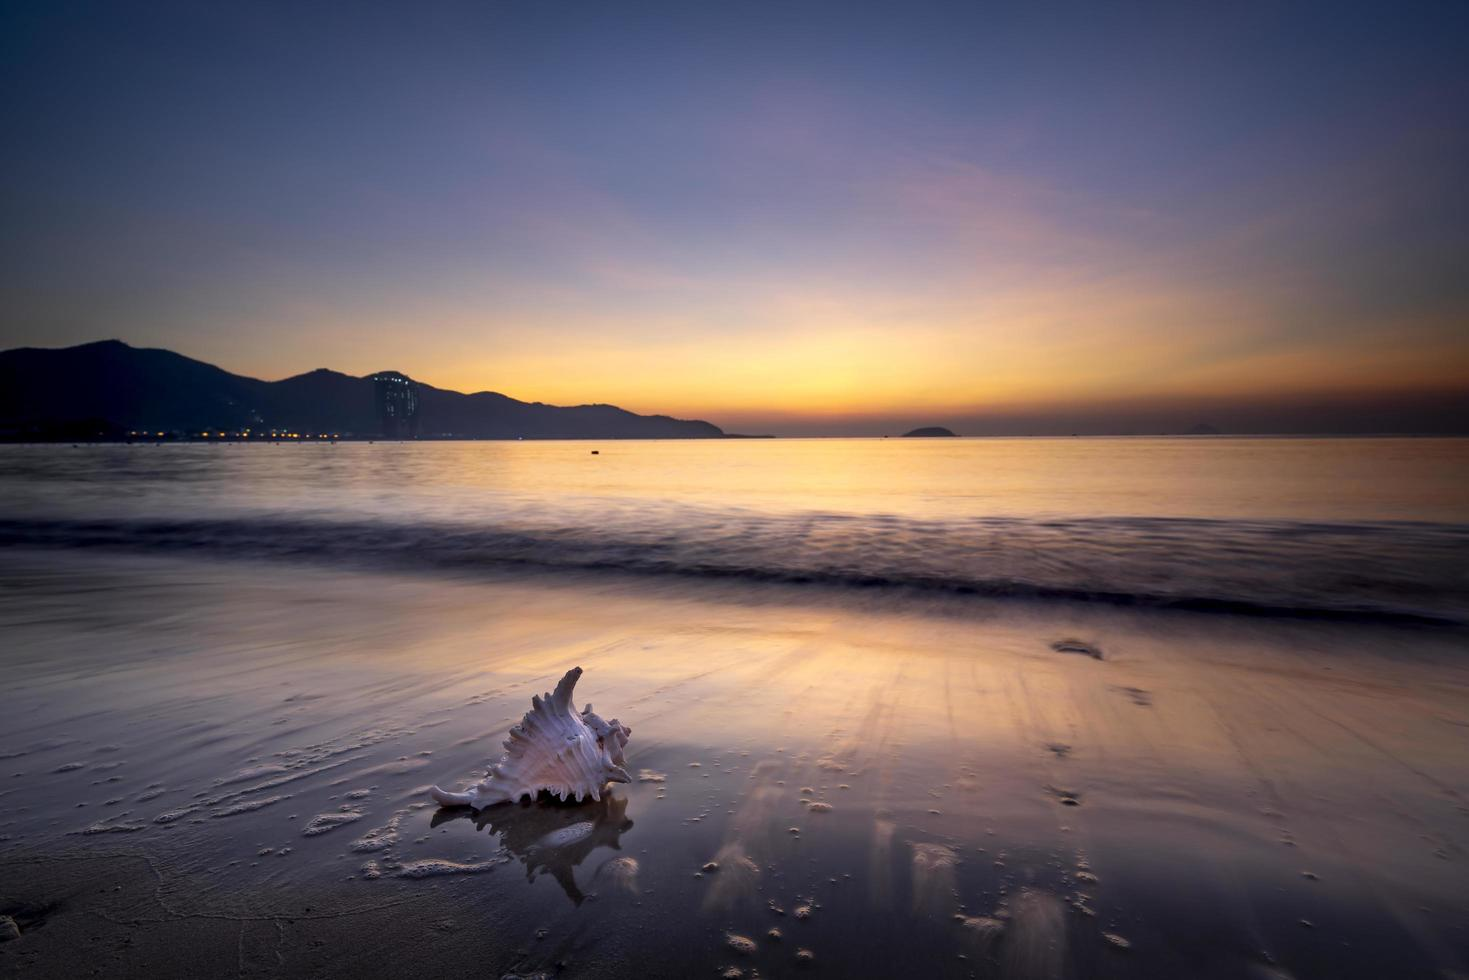 Conch shell on beach at sunset photo